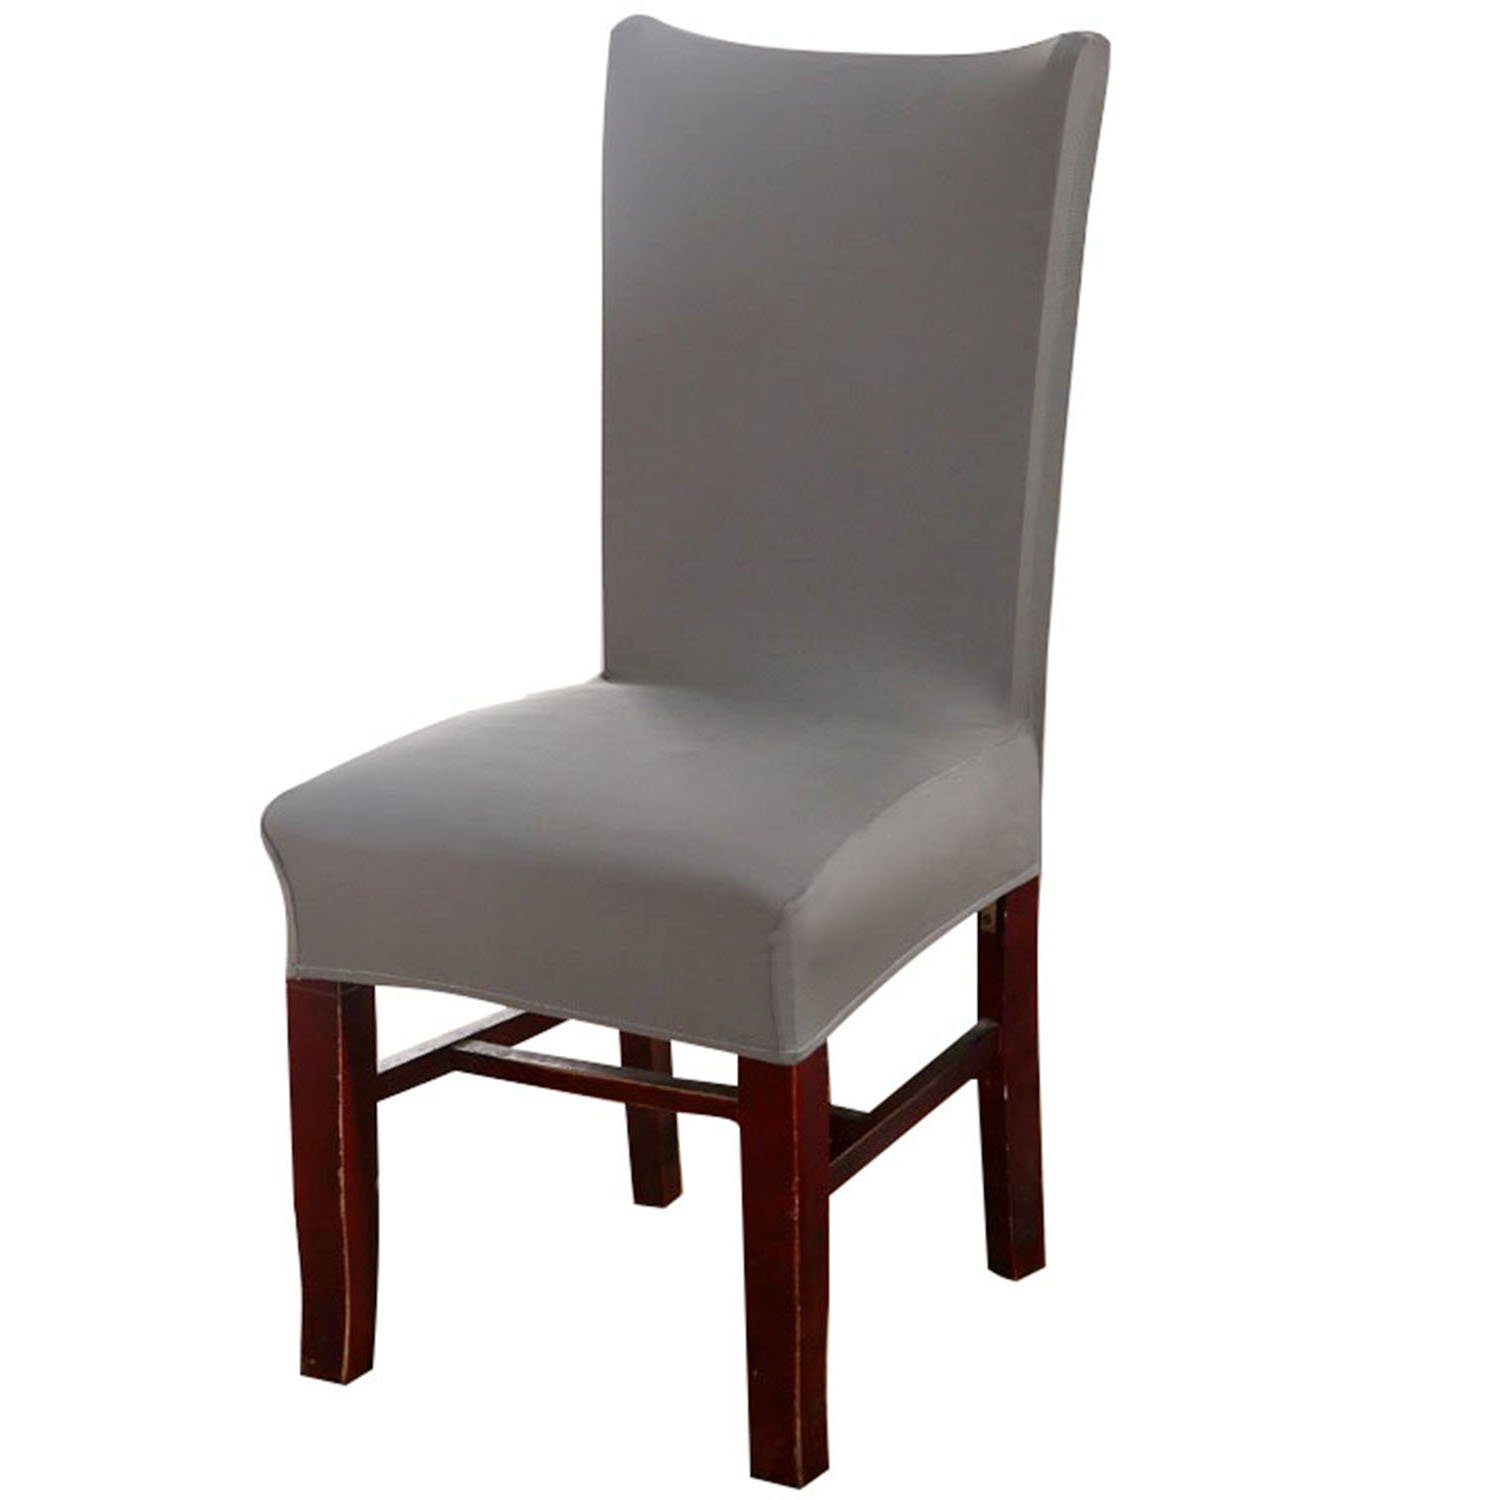 Knit Spandex Fabric Stretch Dining Room Chair Slipcovers